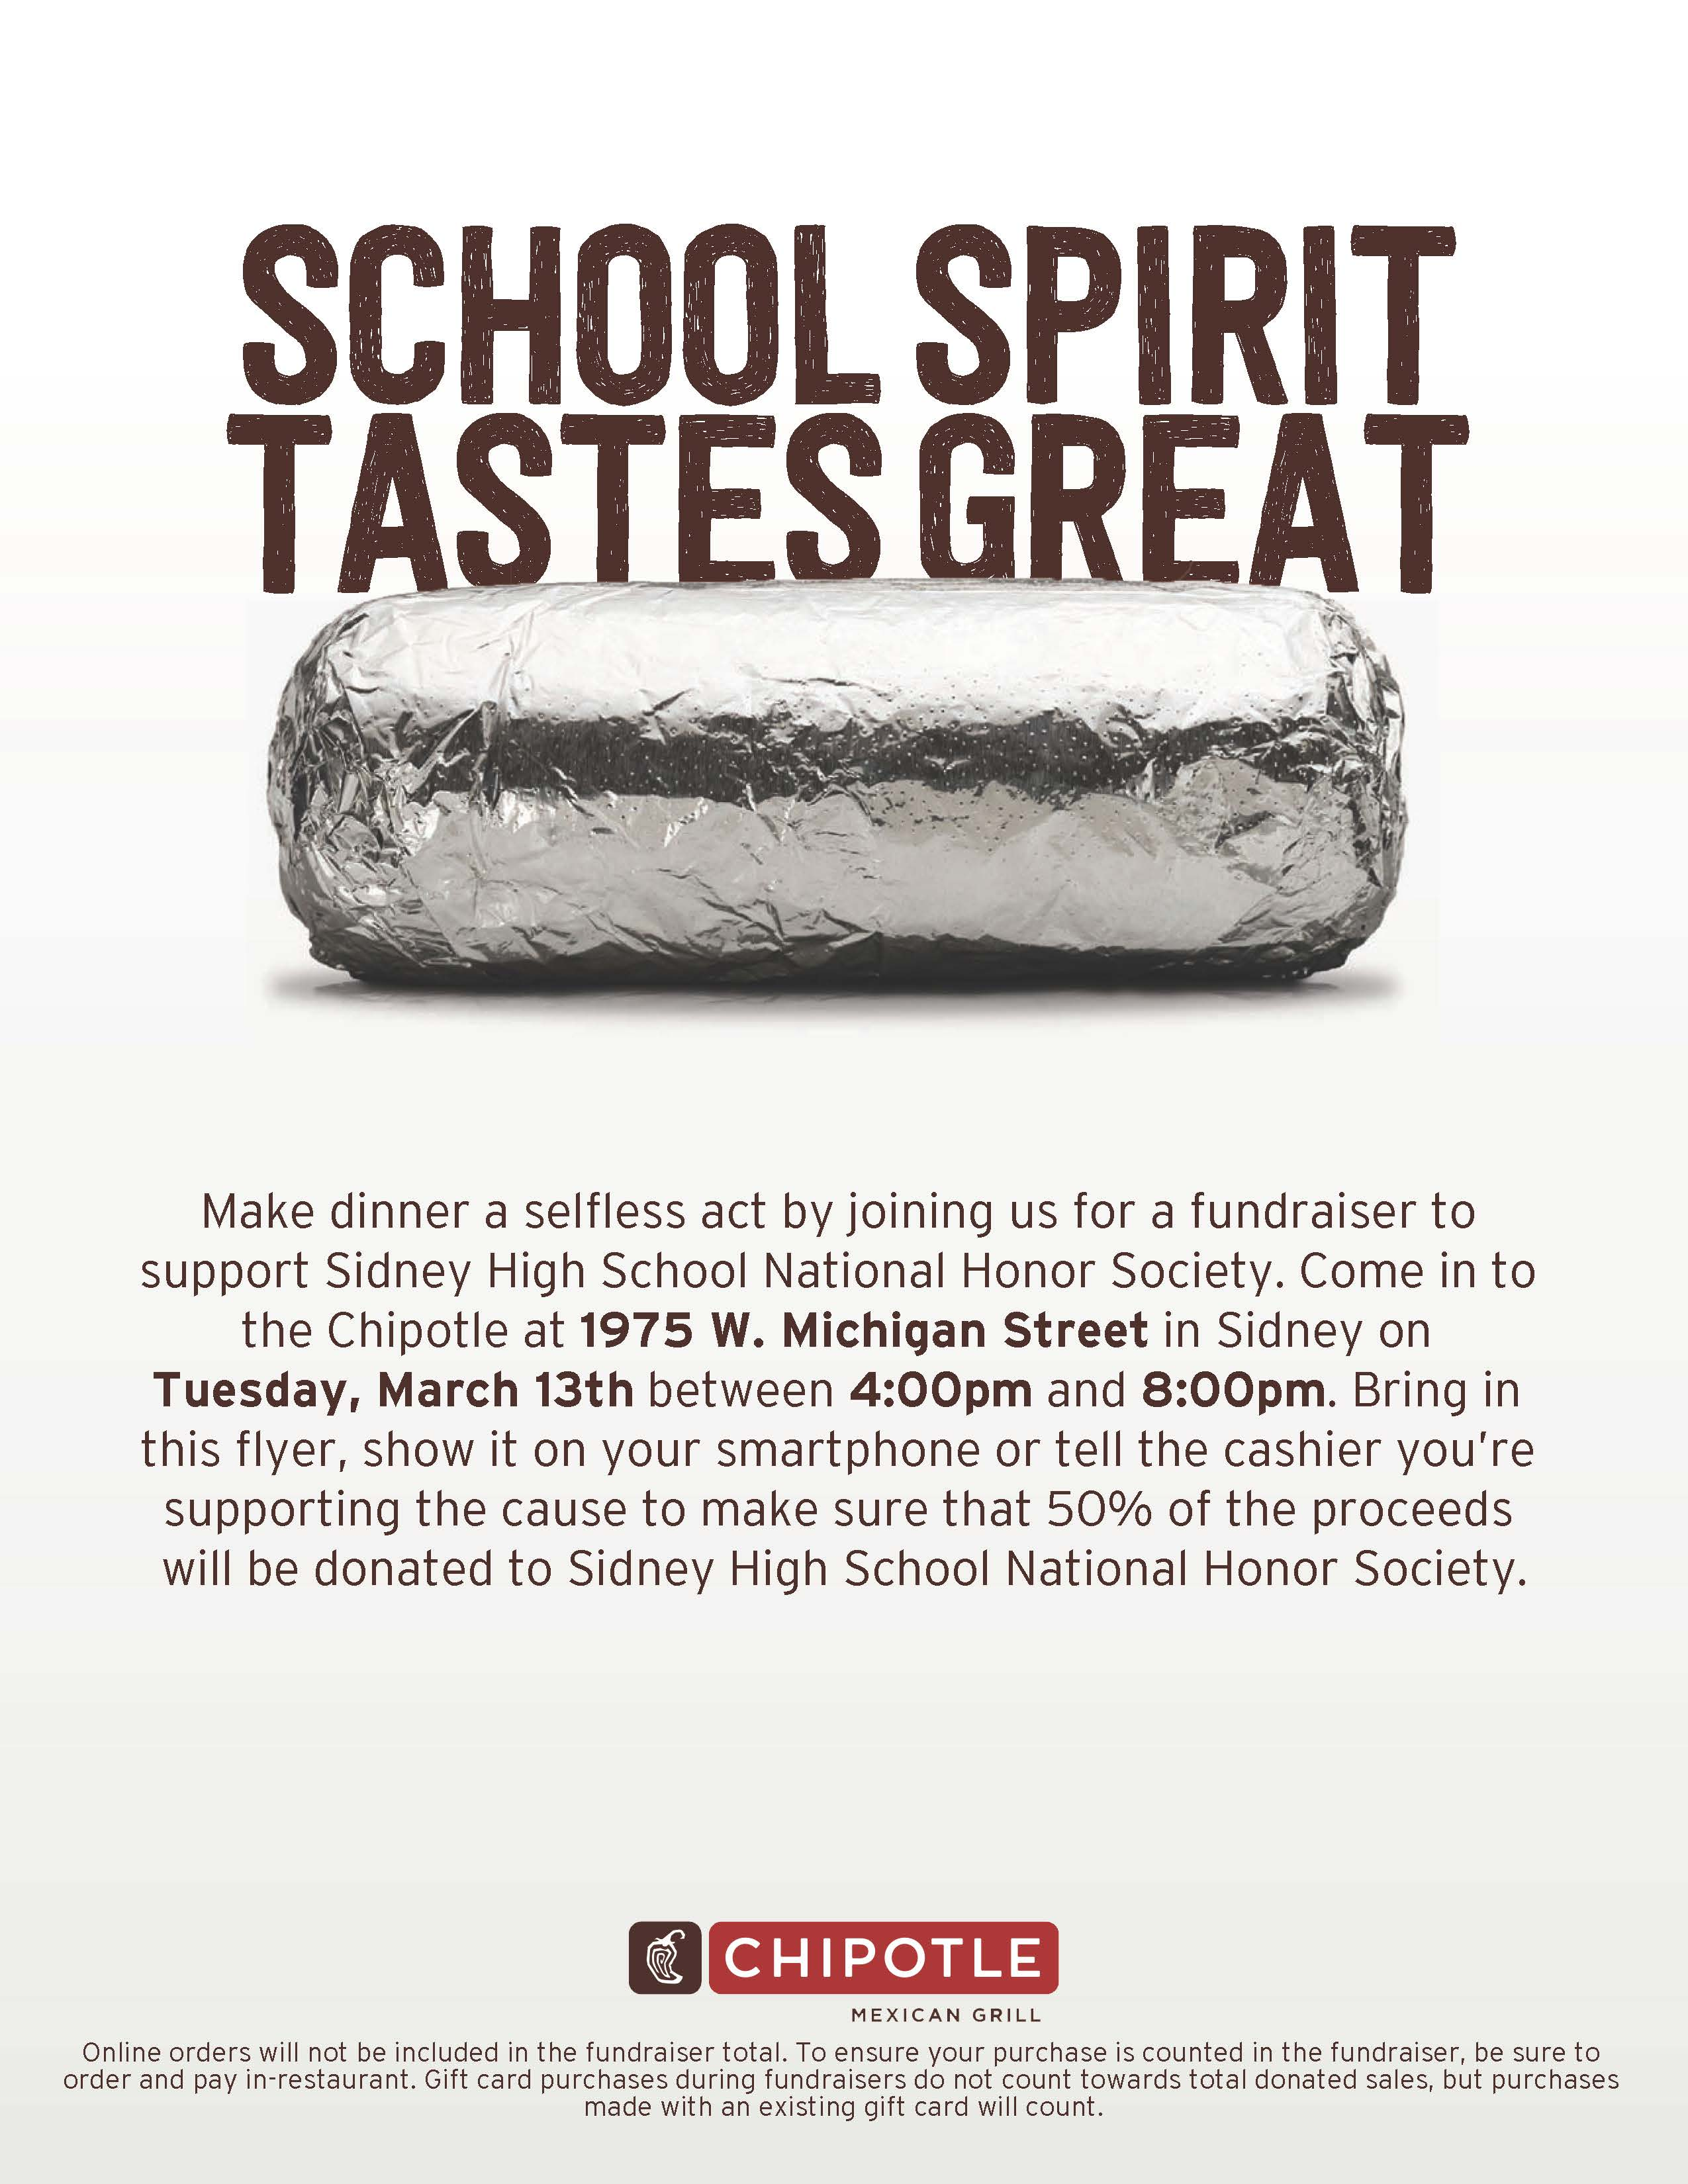 NHS Chipotle Flyer